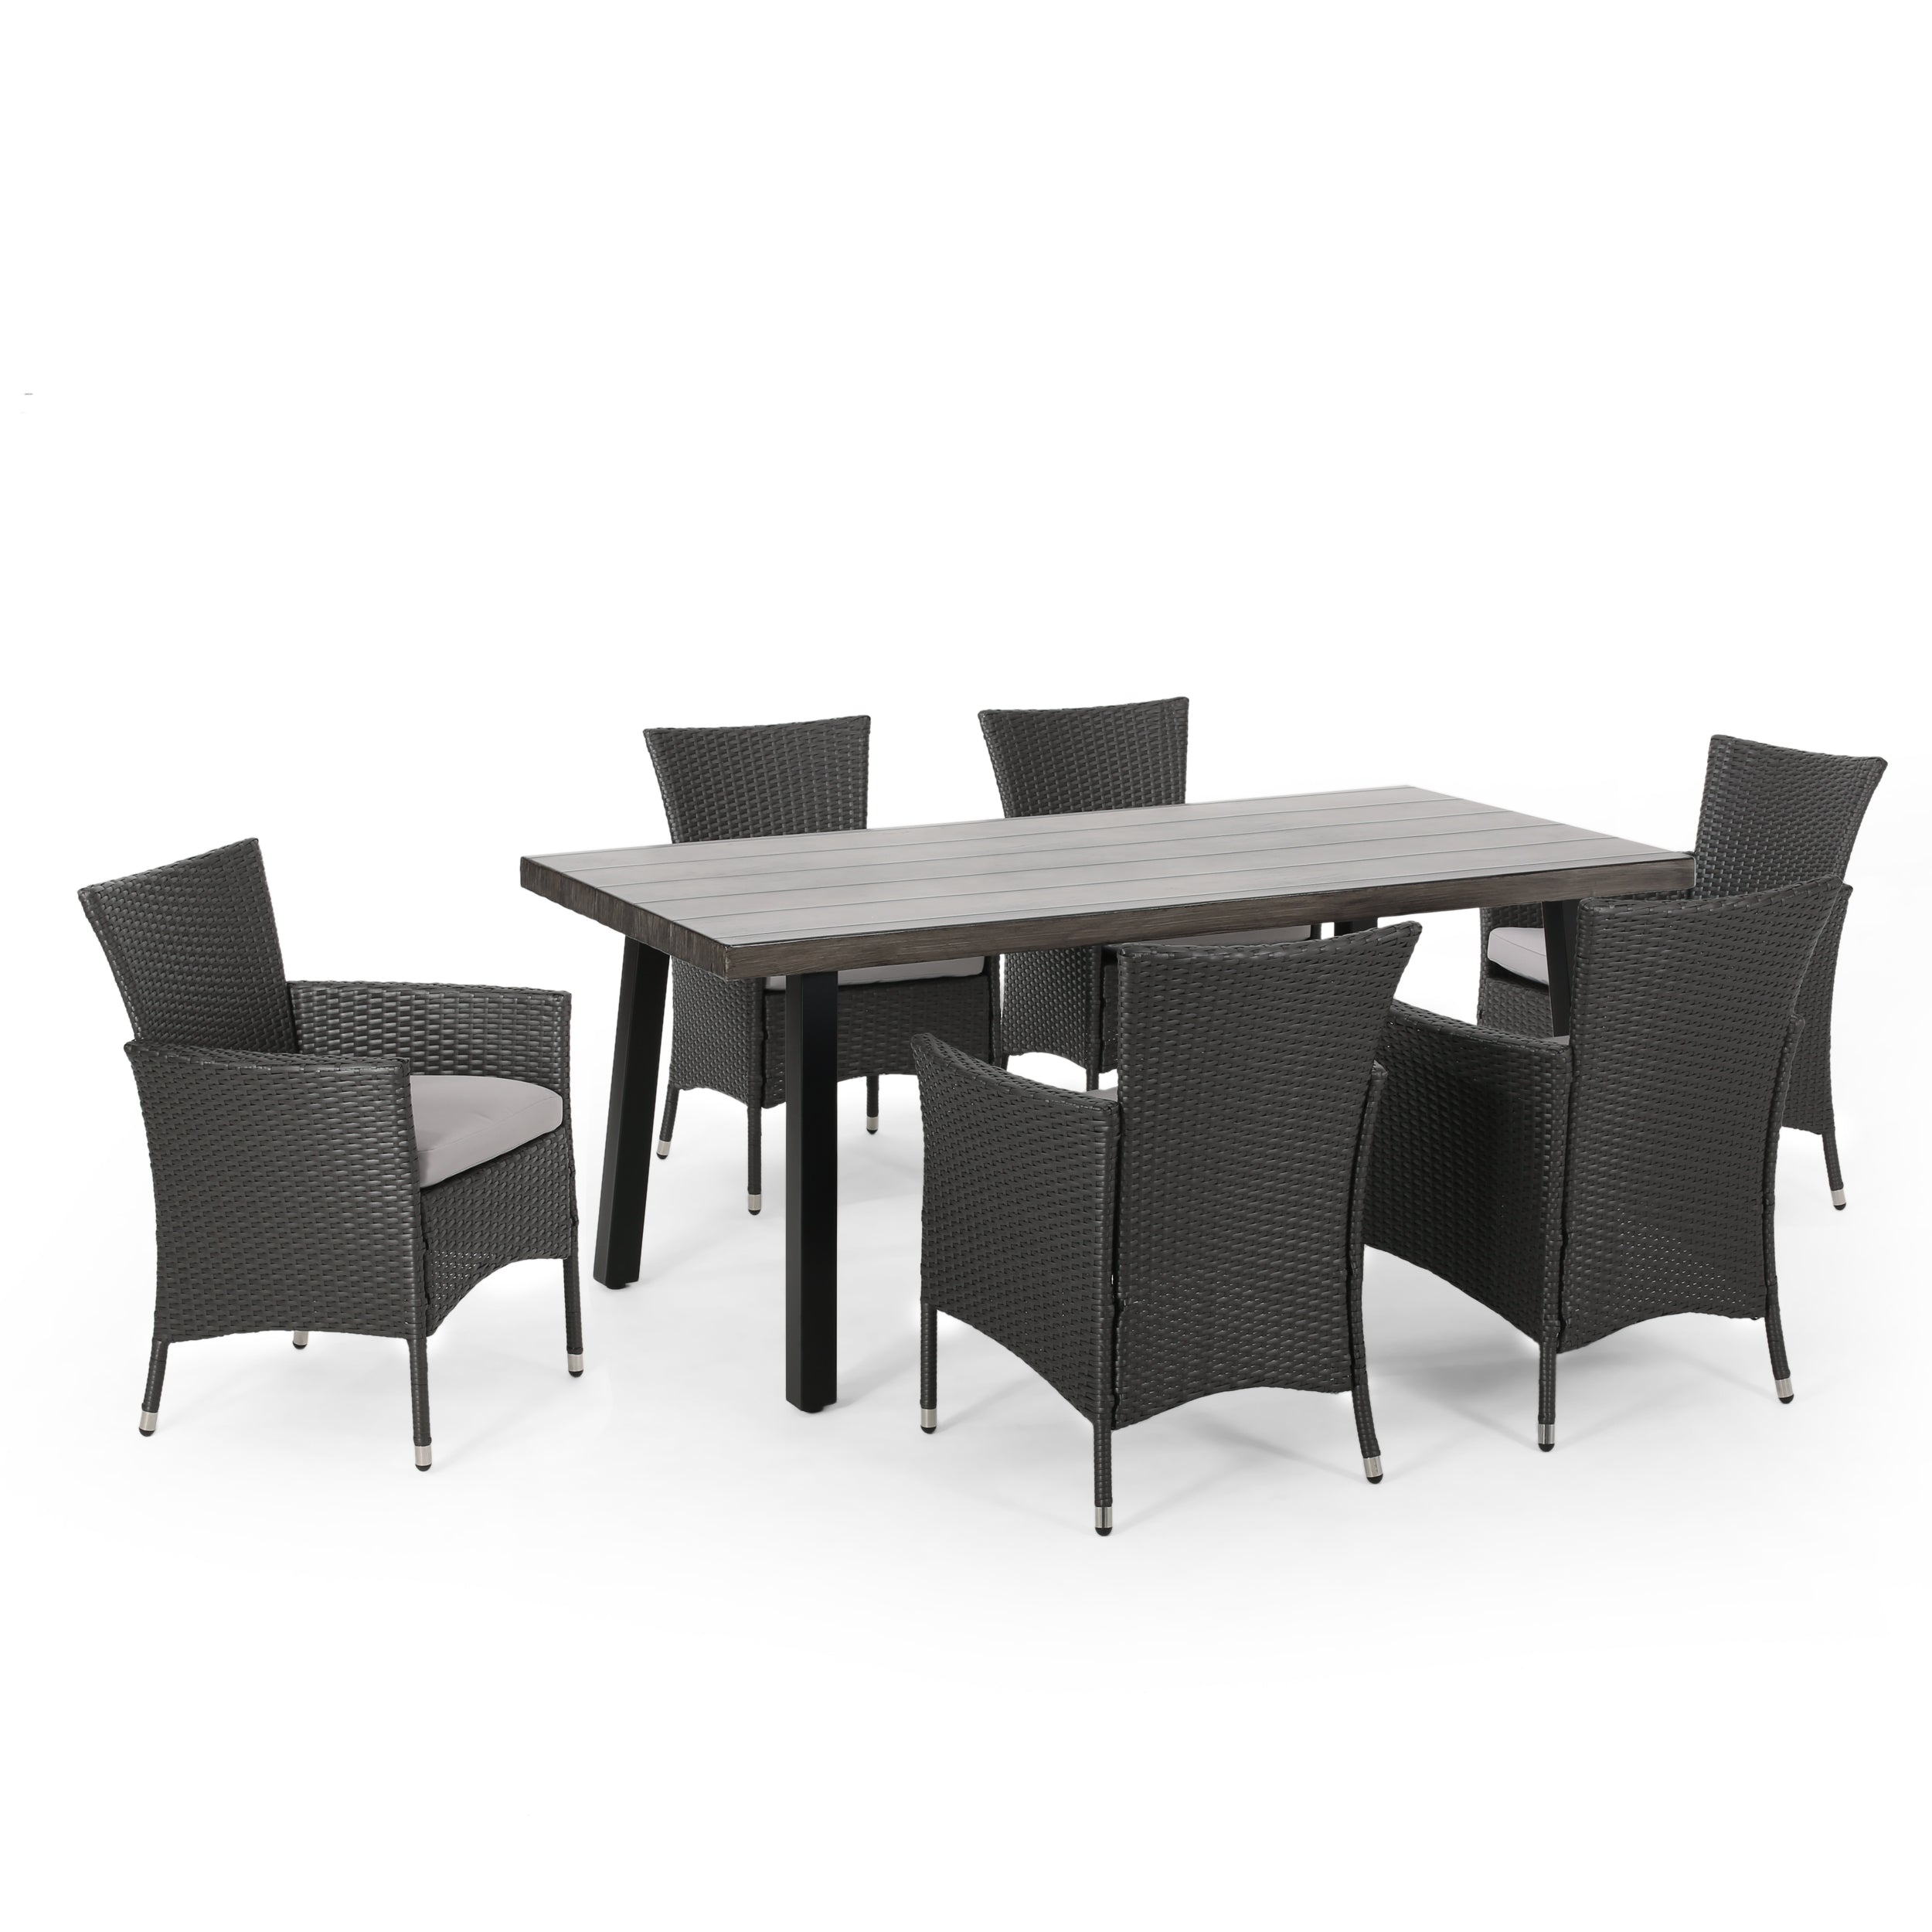 Altair Outdoor 7 Piece Aluminum Dining Set with Wicker Chairs Default Title